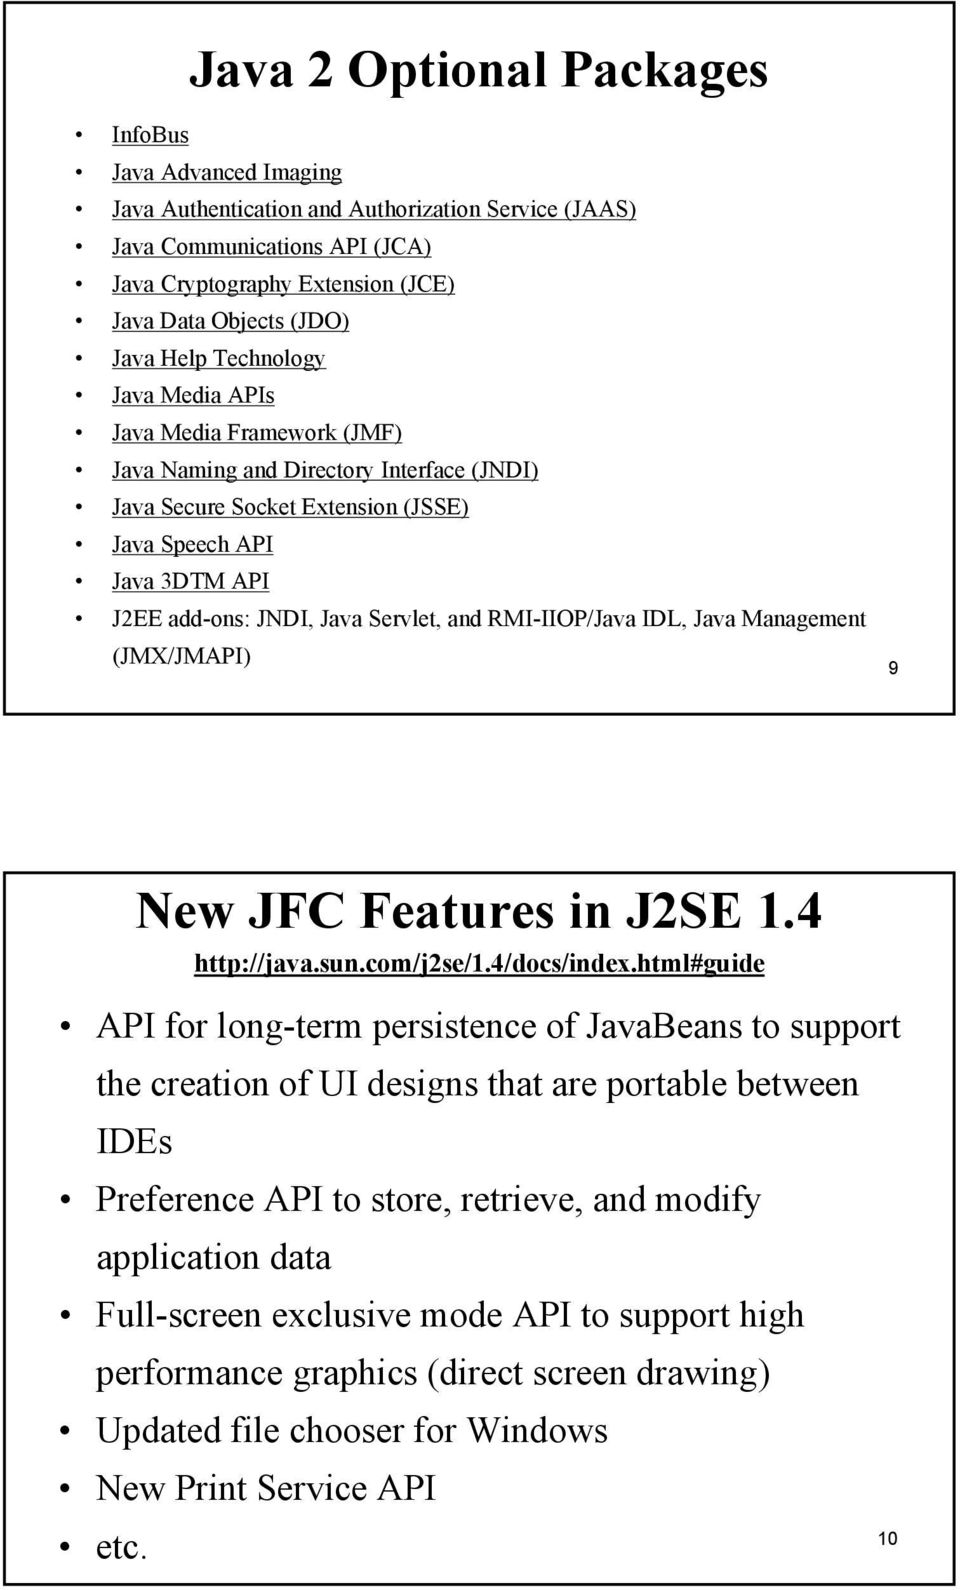 Servlet, and RMI-IIOP/Java IDL, Java Management (JMX/JMAPI) 9 New JFC Features in J2SE 1.4 http://java.sun.com/j2se/1.4/docs/index.